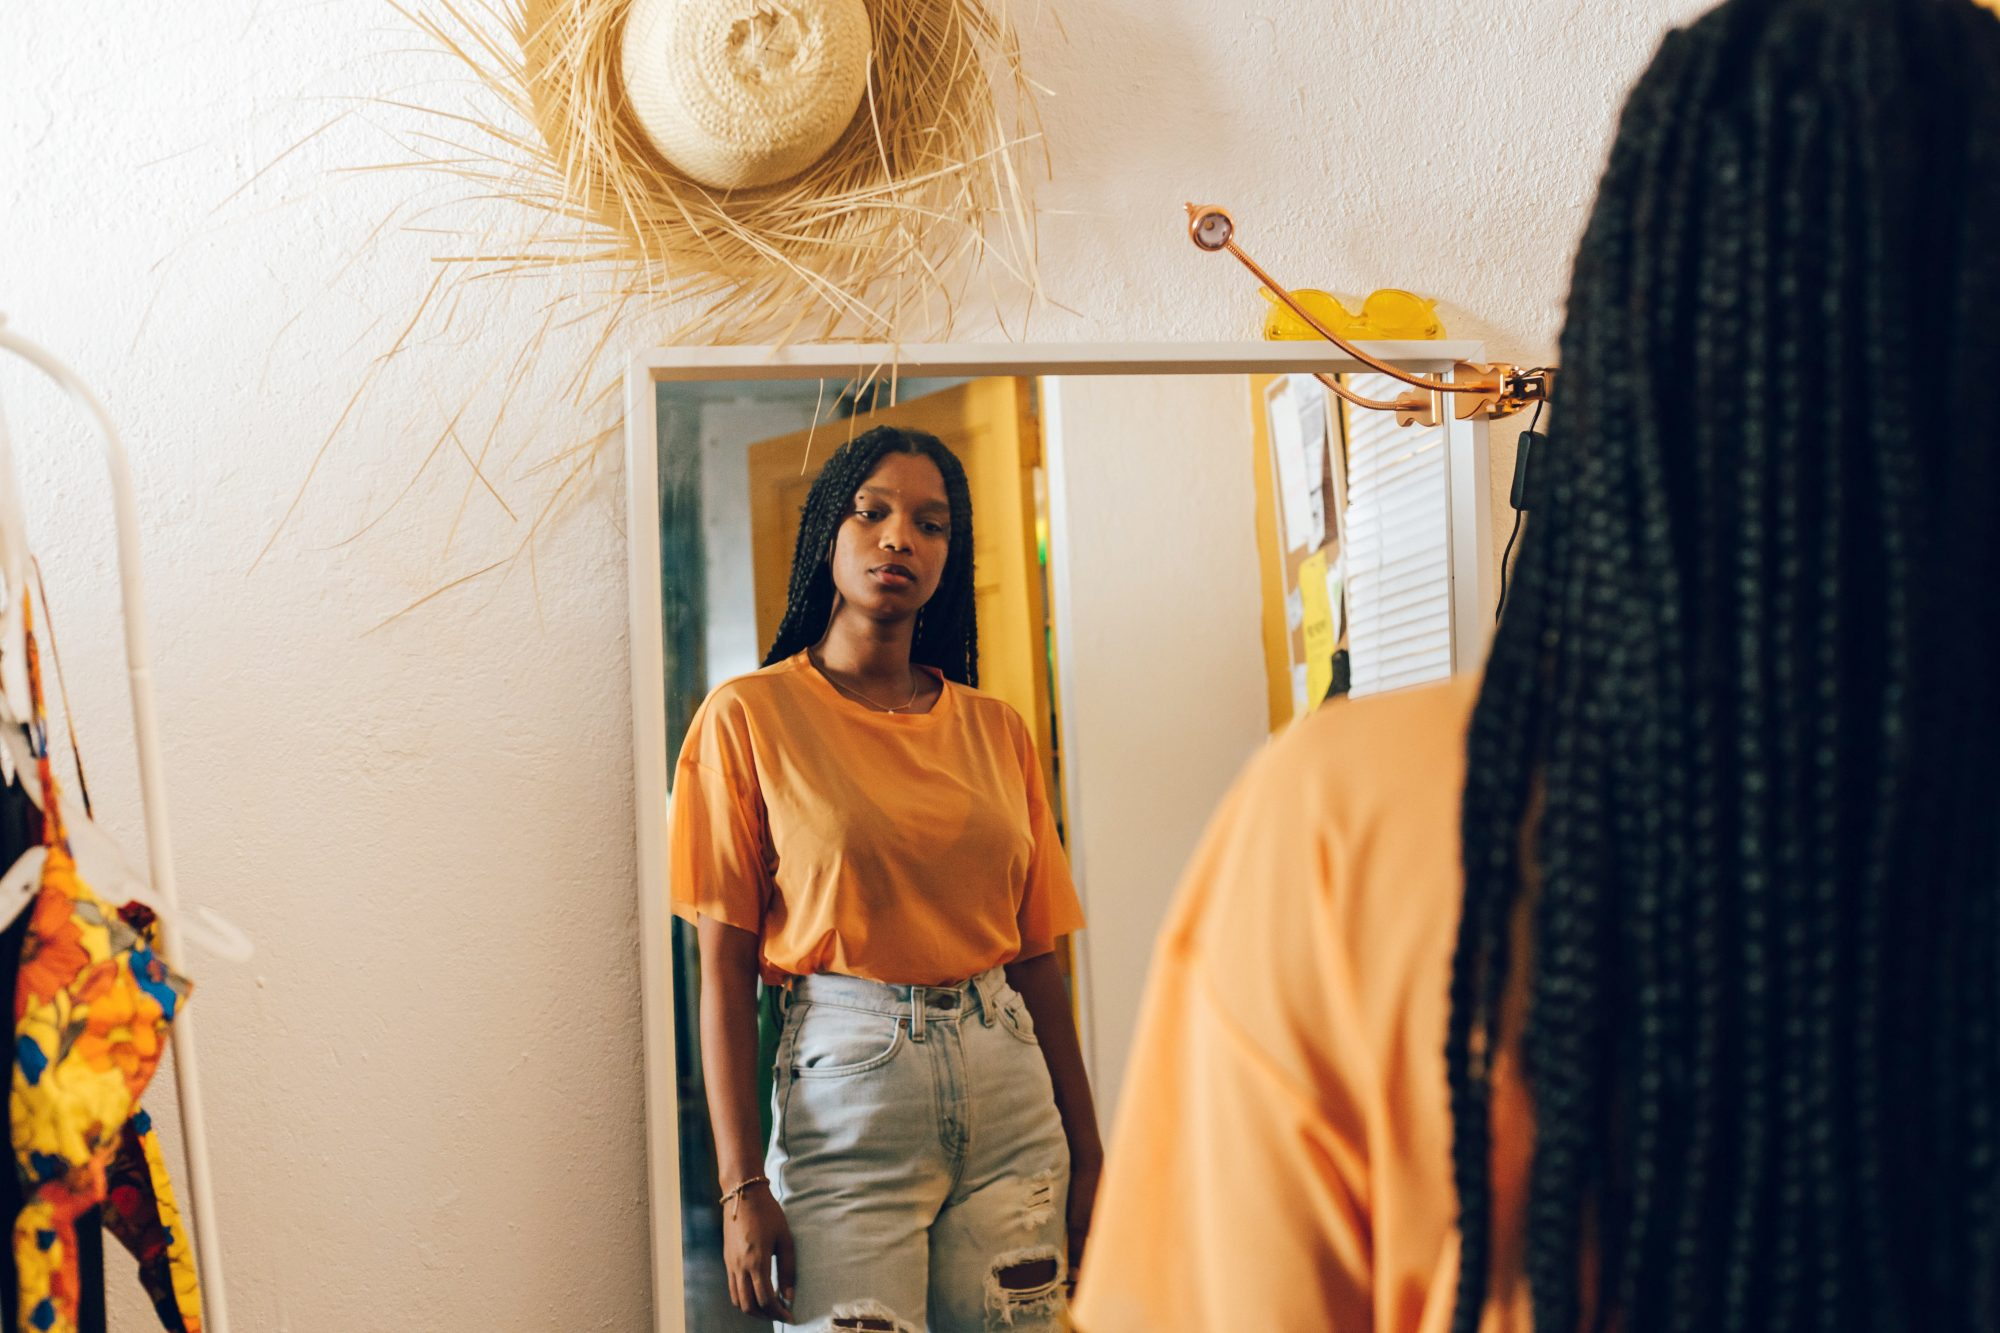 How to Treat Body Dysmorphic Disorder, According to Experts